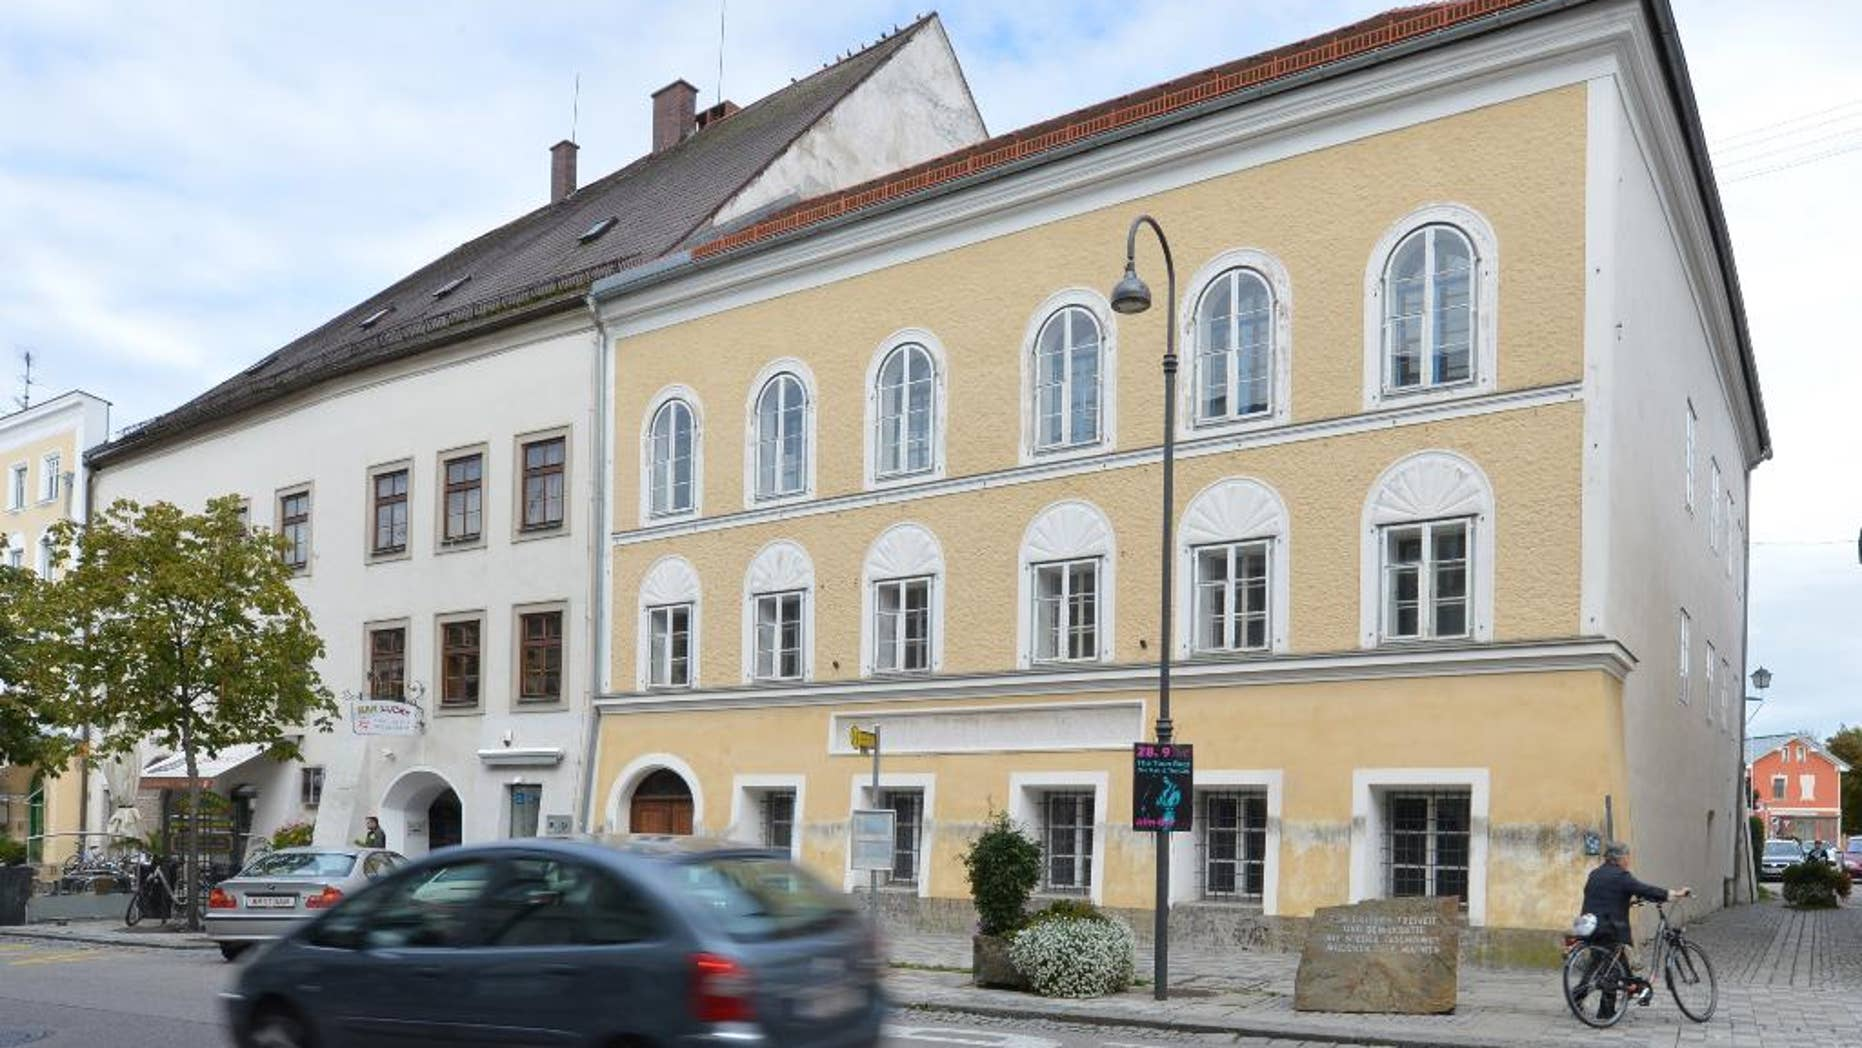 """FILE - This Sept. 27, 2012 file picture  shows an exterior view of Adolf Hitler's birth house , front, in Braunau am Inn, Austria. Austria's interior minister says Saturday  June 11, 2016 he can imagine having the house where Adolf Hitler was born demolished, calling it """"the cleanest solution.""""  The Austrian government wants to expropriate the house in Braunau am Inn where the future Nazi leader was born in 1889 to keep it from falling into the wrong hands.  (AP Photo / Kerstin Joensson)"""